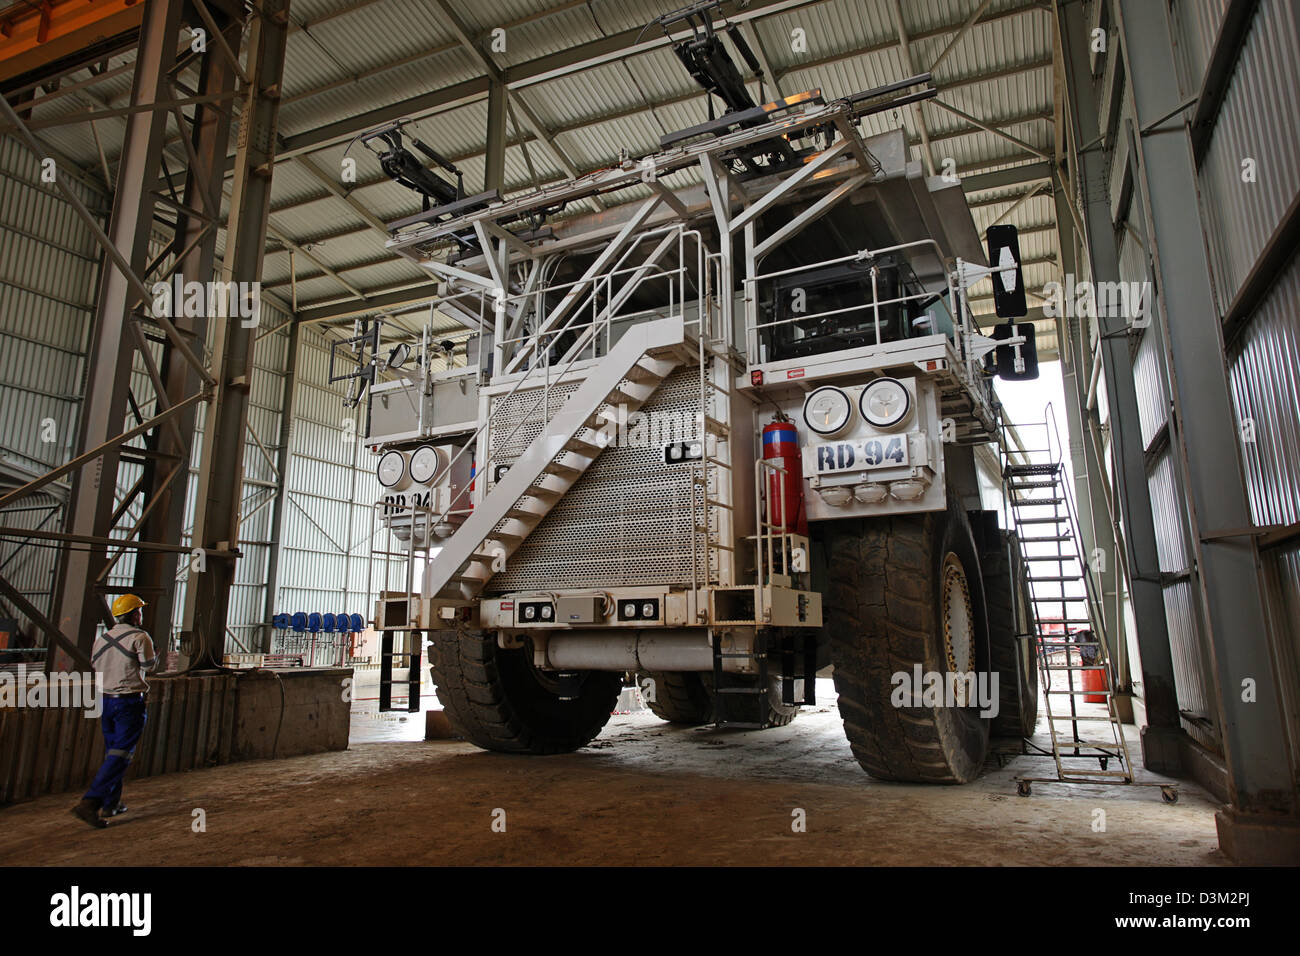 FQM copper mining large haul truck parked - Stock Image